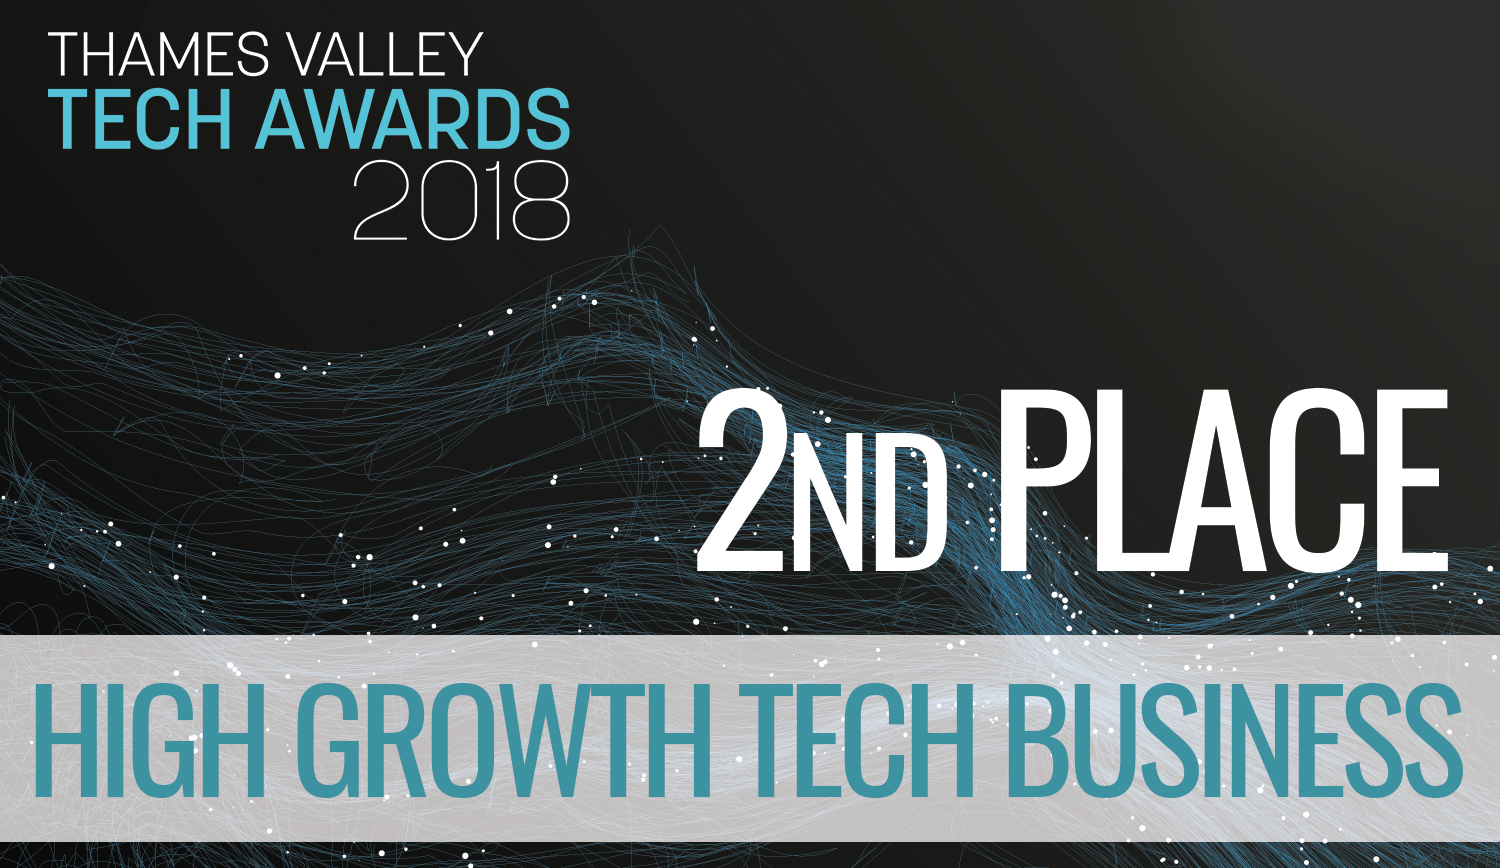 Thames Valley Tech Awards - High Growth Tech Business: 2nd Place